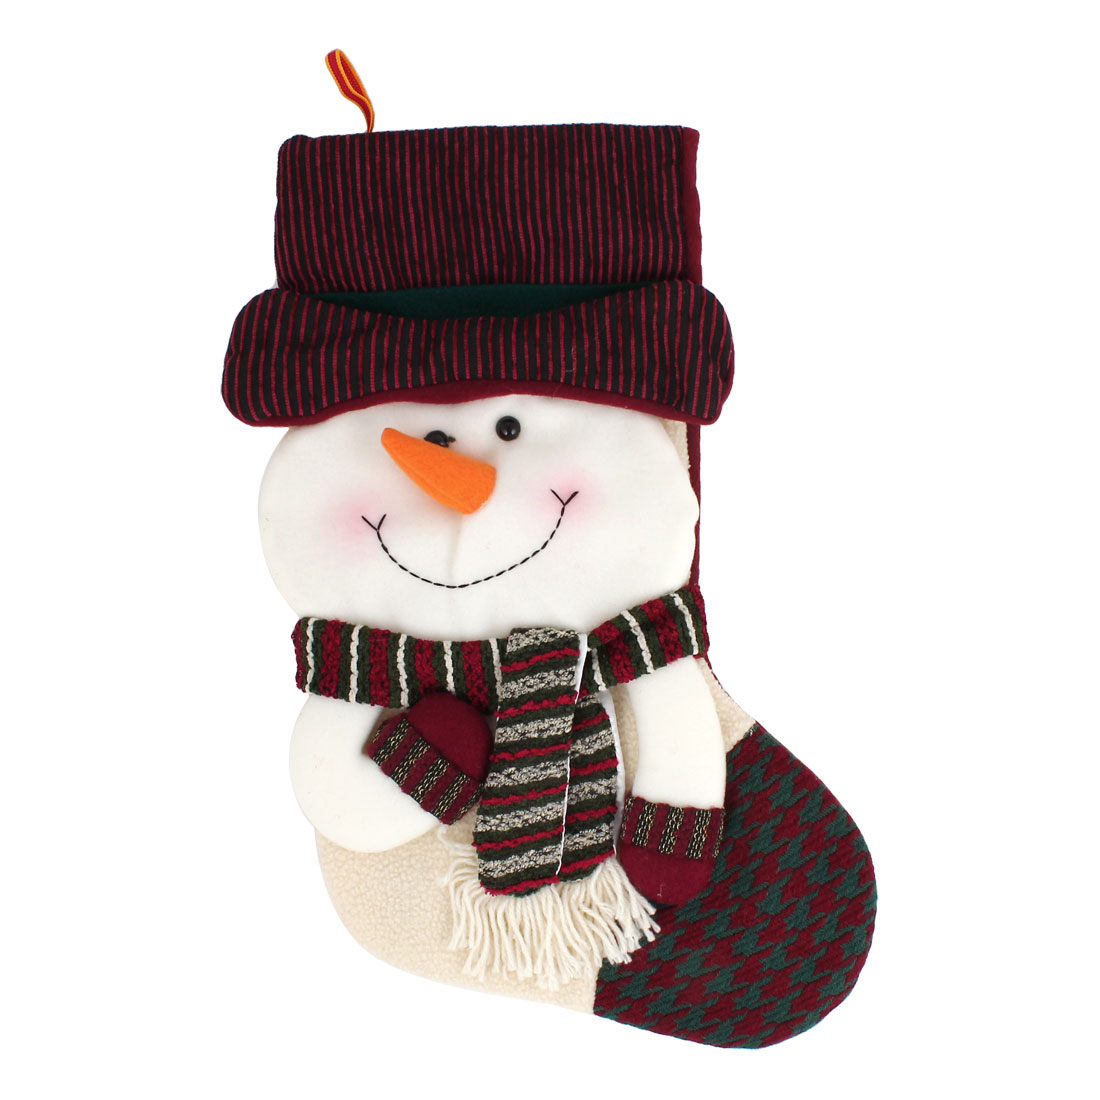 27cm x 43cm Xmas Snowman Detail Felt Christmas Stocking Gift Holder Burgundy White Green